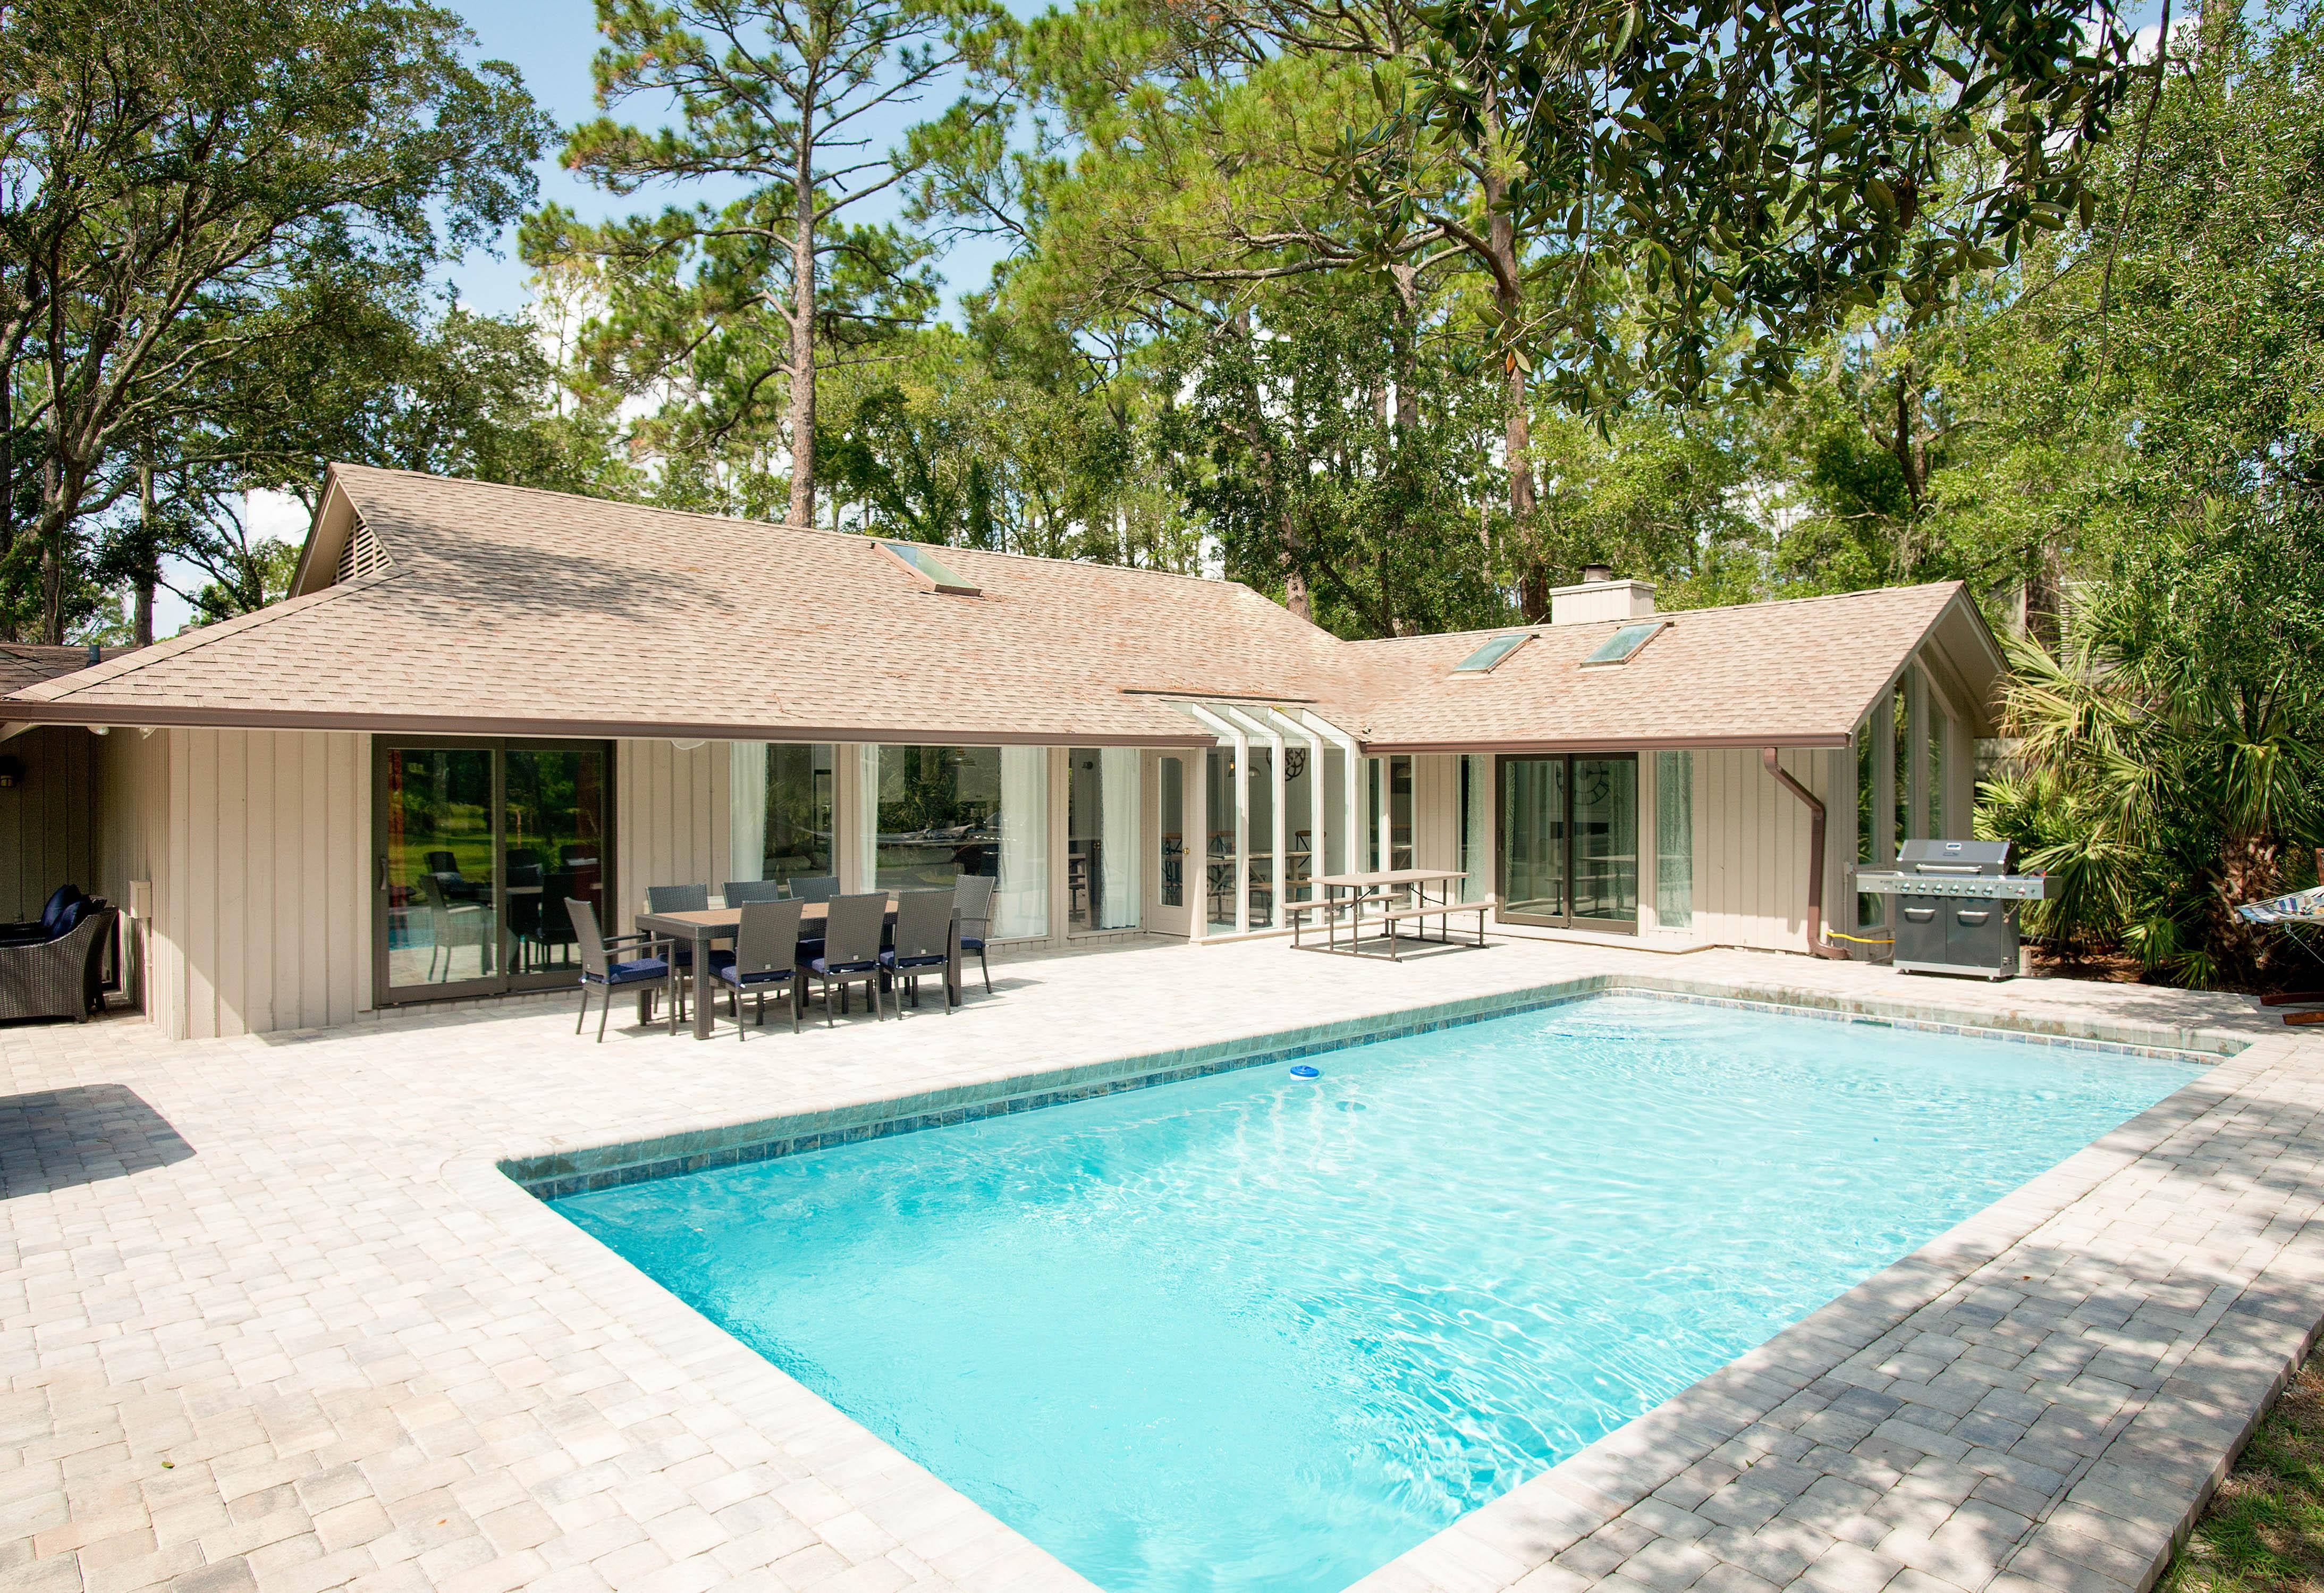 Welcome to Hilton Head Island! This Sea Pines Resort home is professionally managed by TurnKey Vacation Rentals.